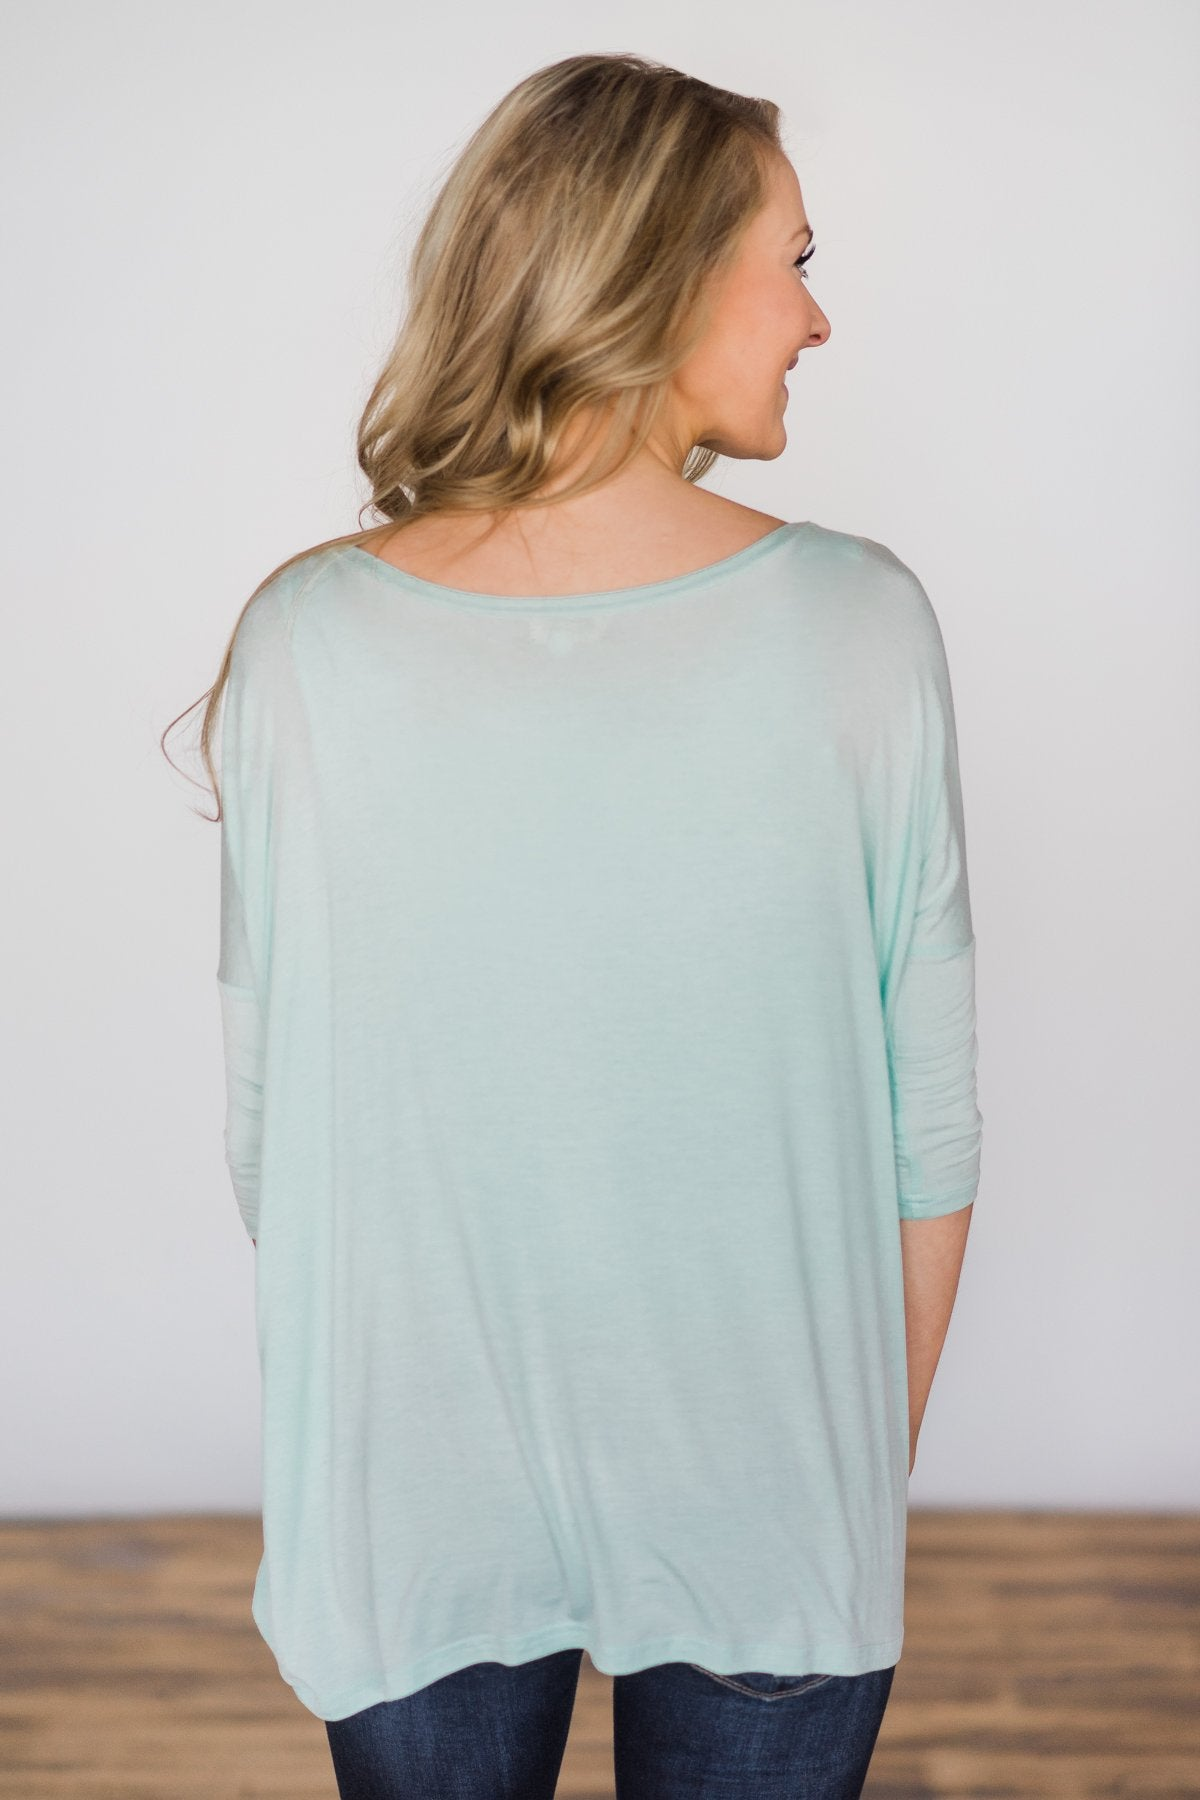 Your Everyday Casual Piko Top - Mint